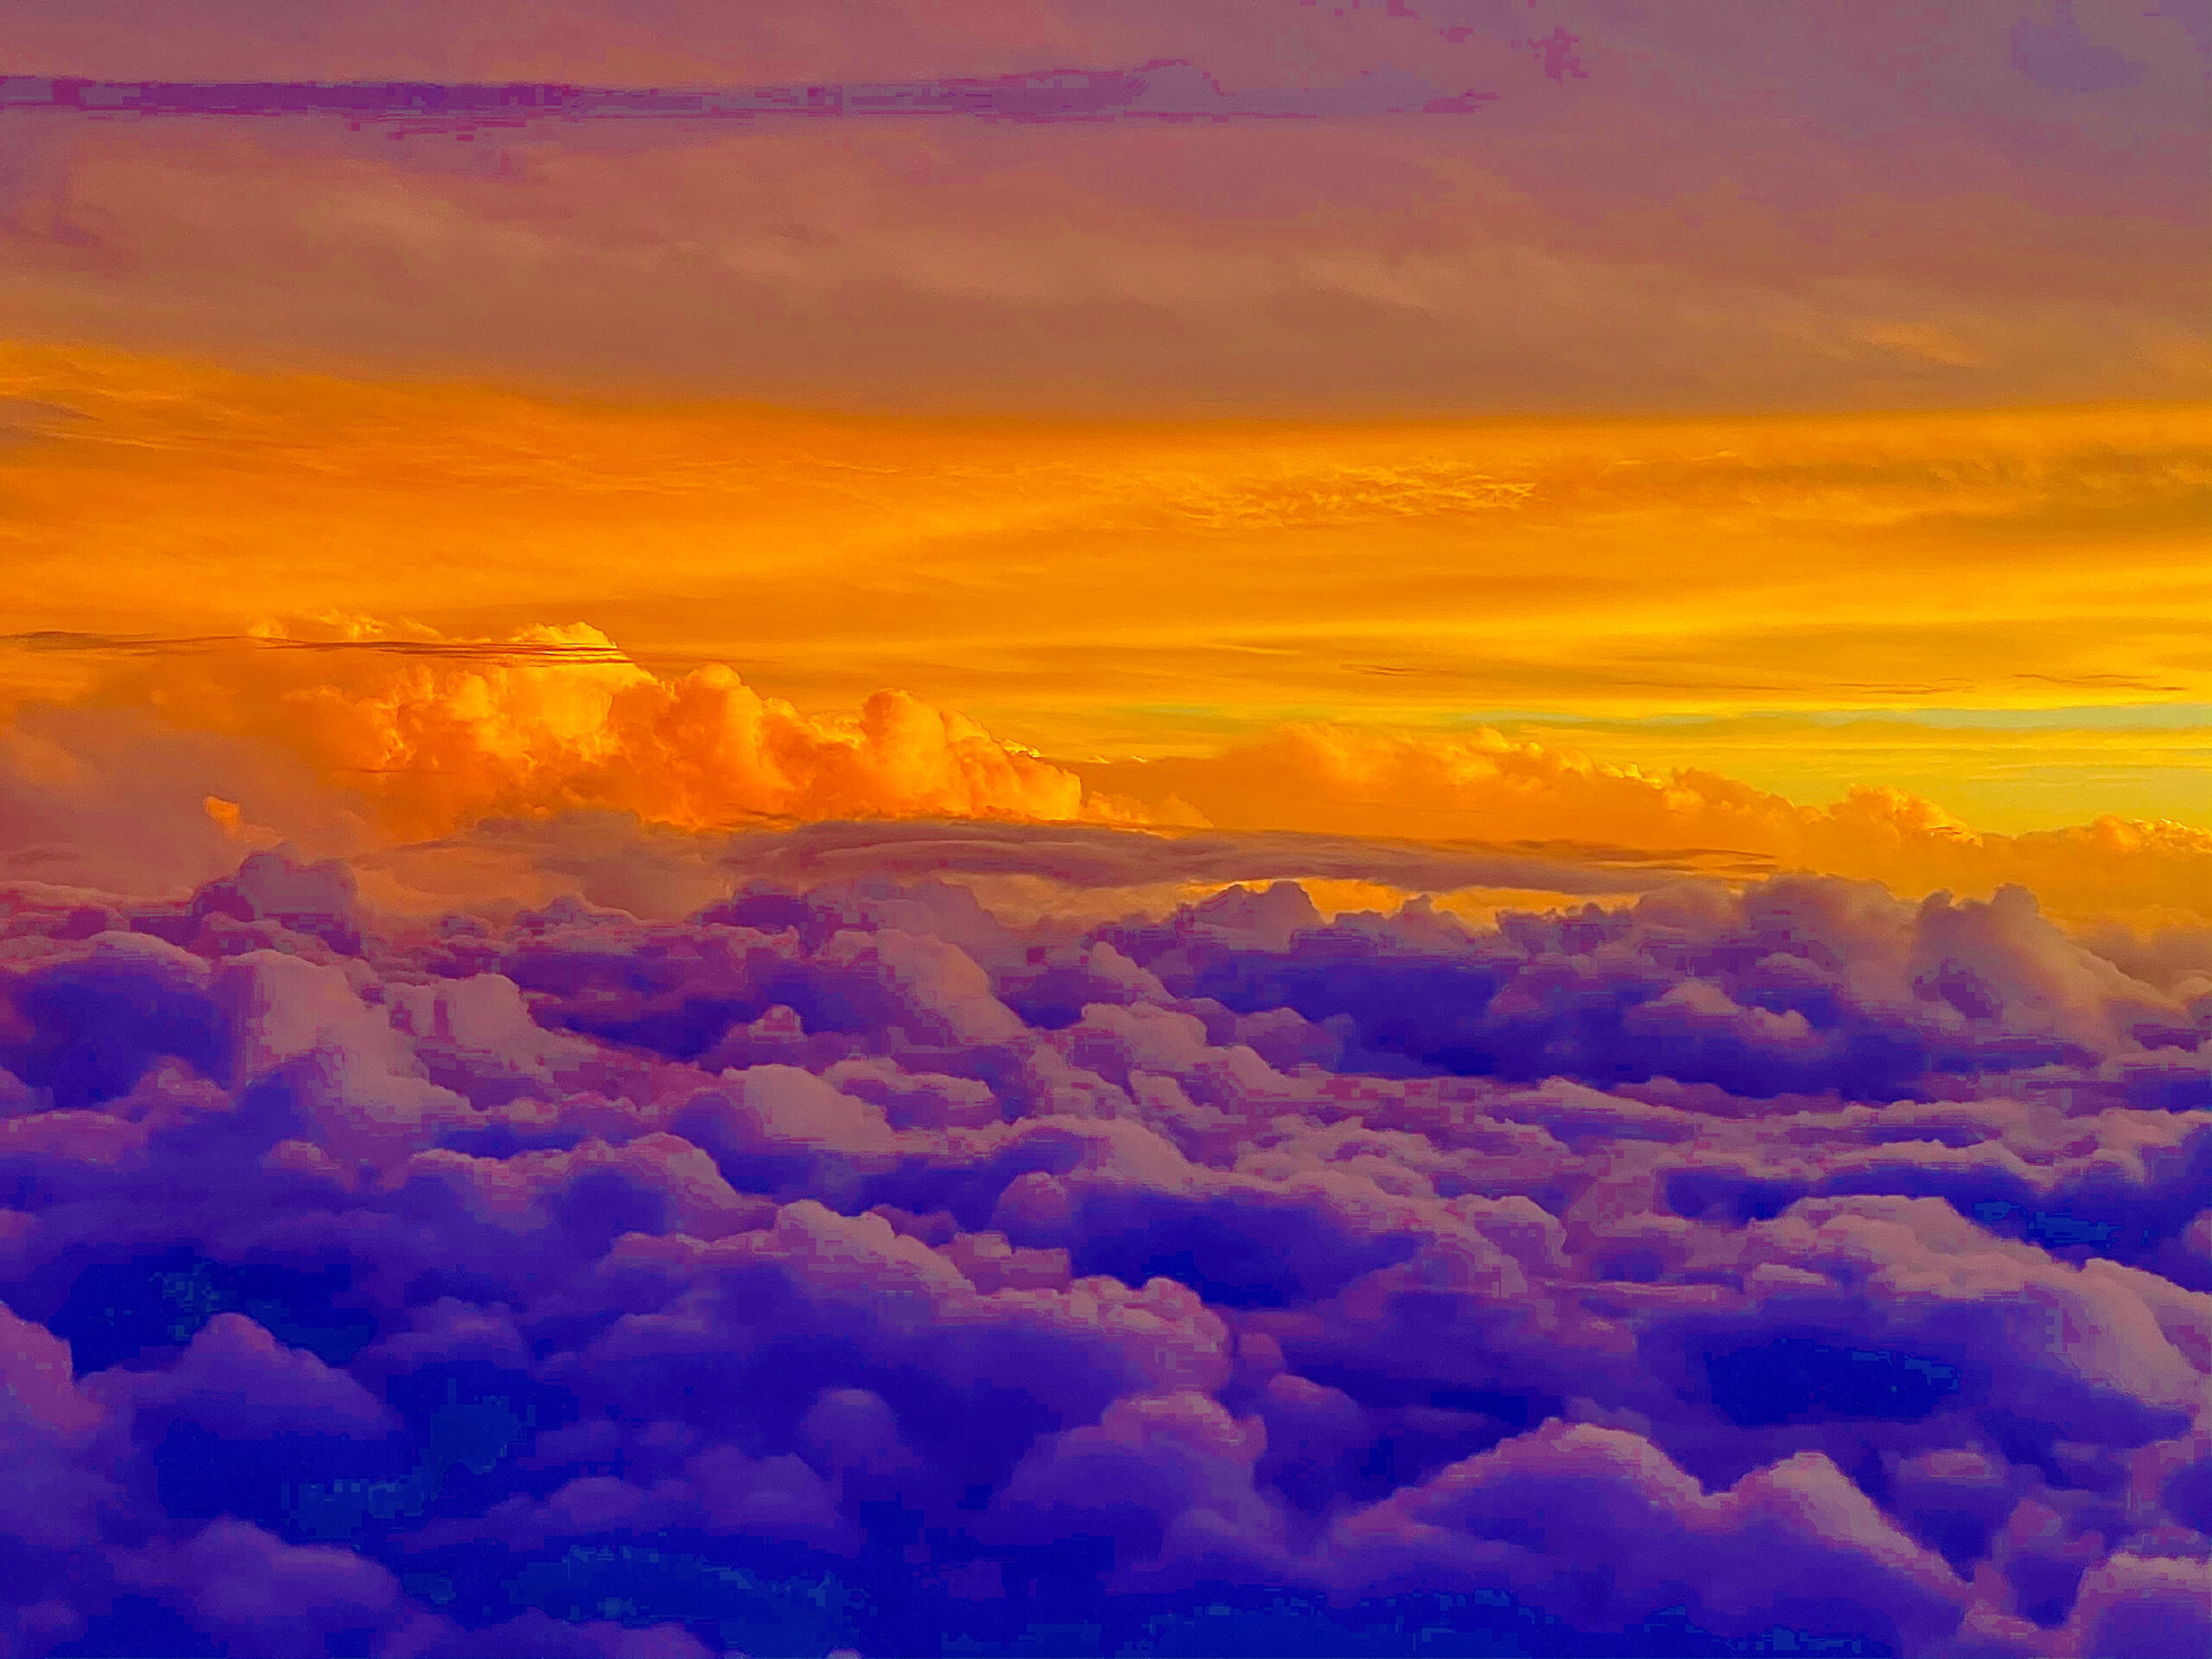 Image o clouds taken form aircraft, sunset